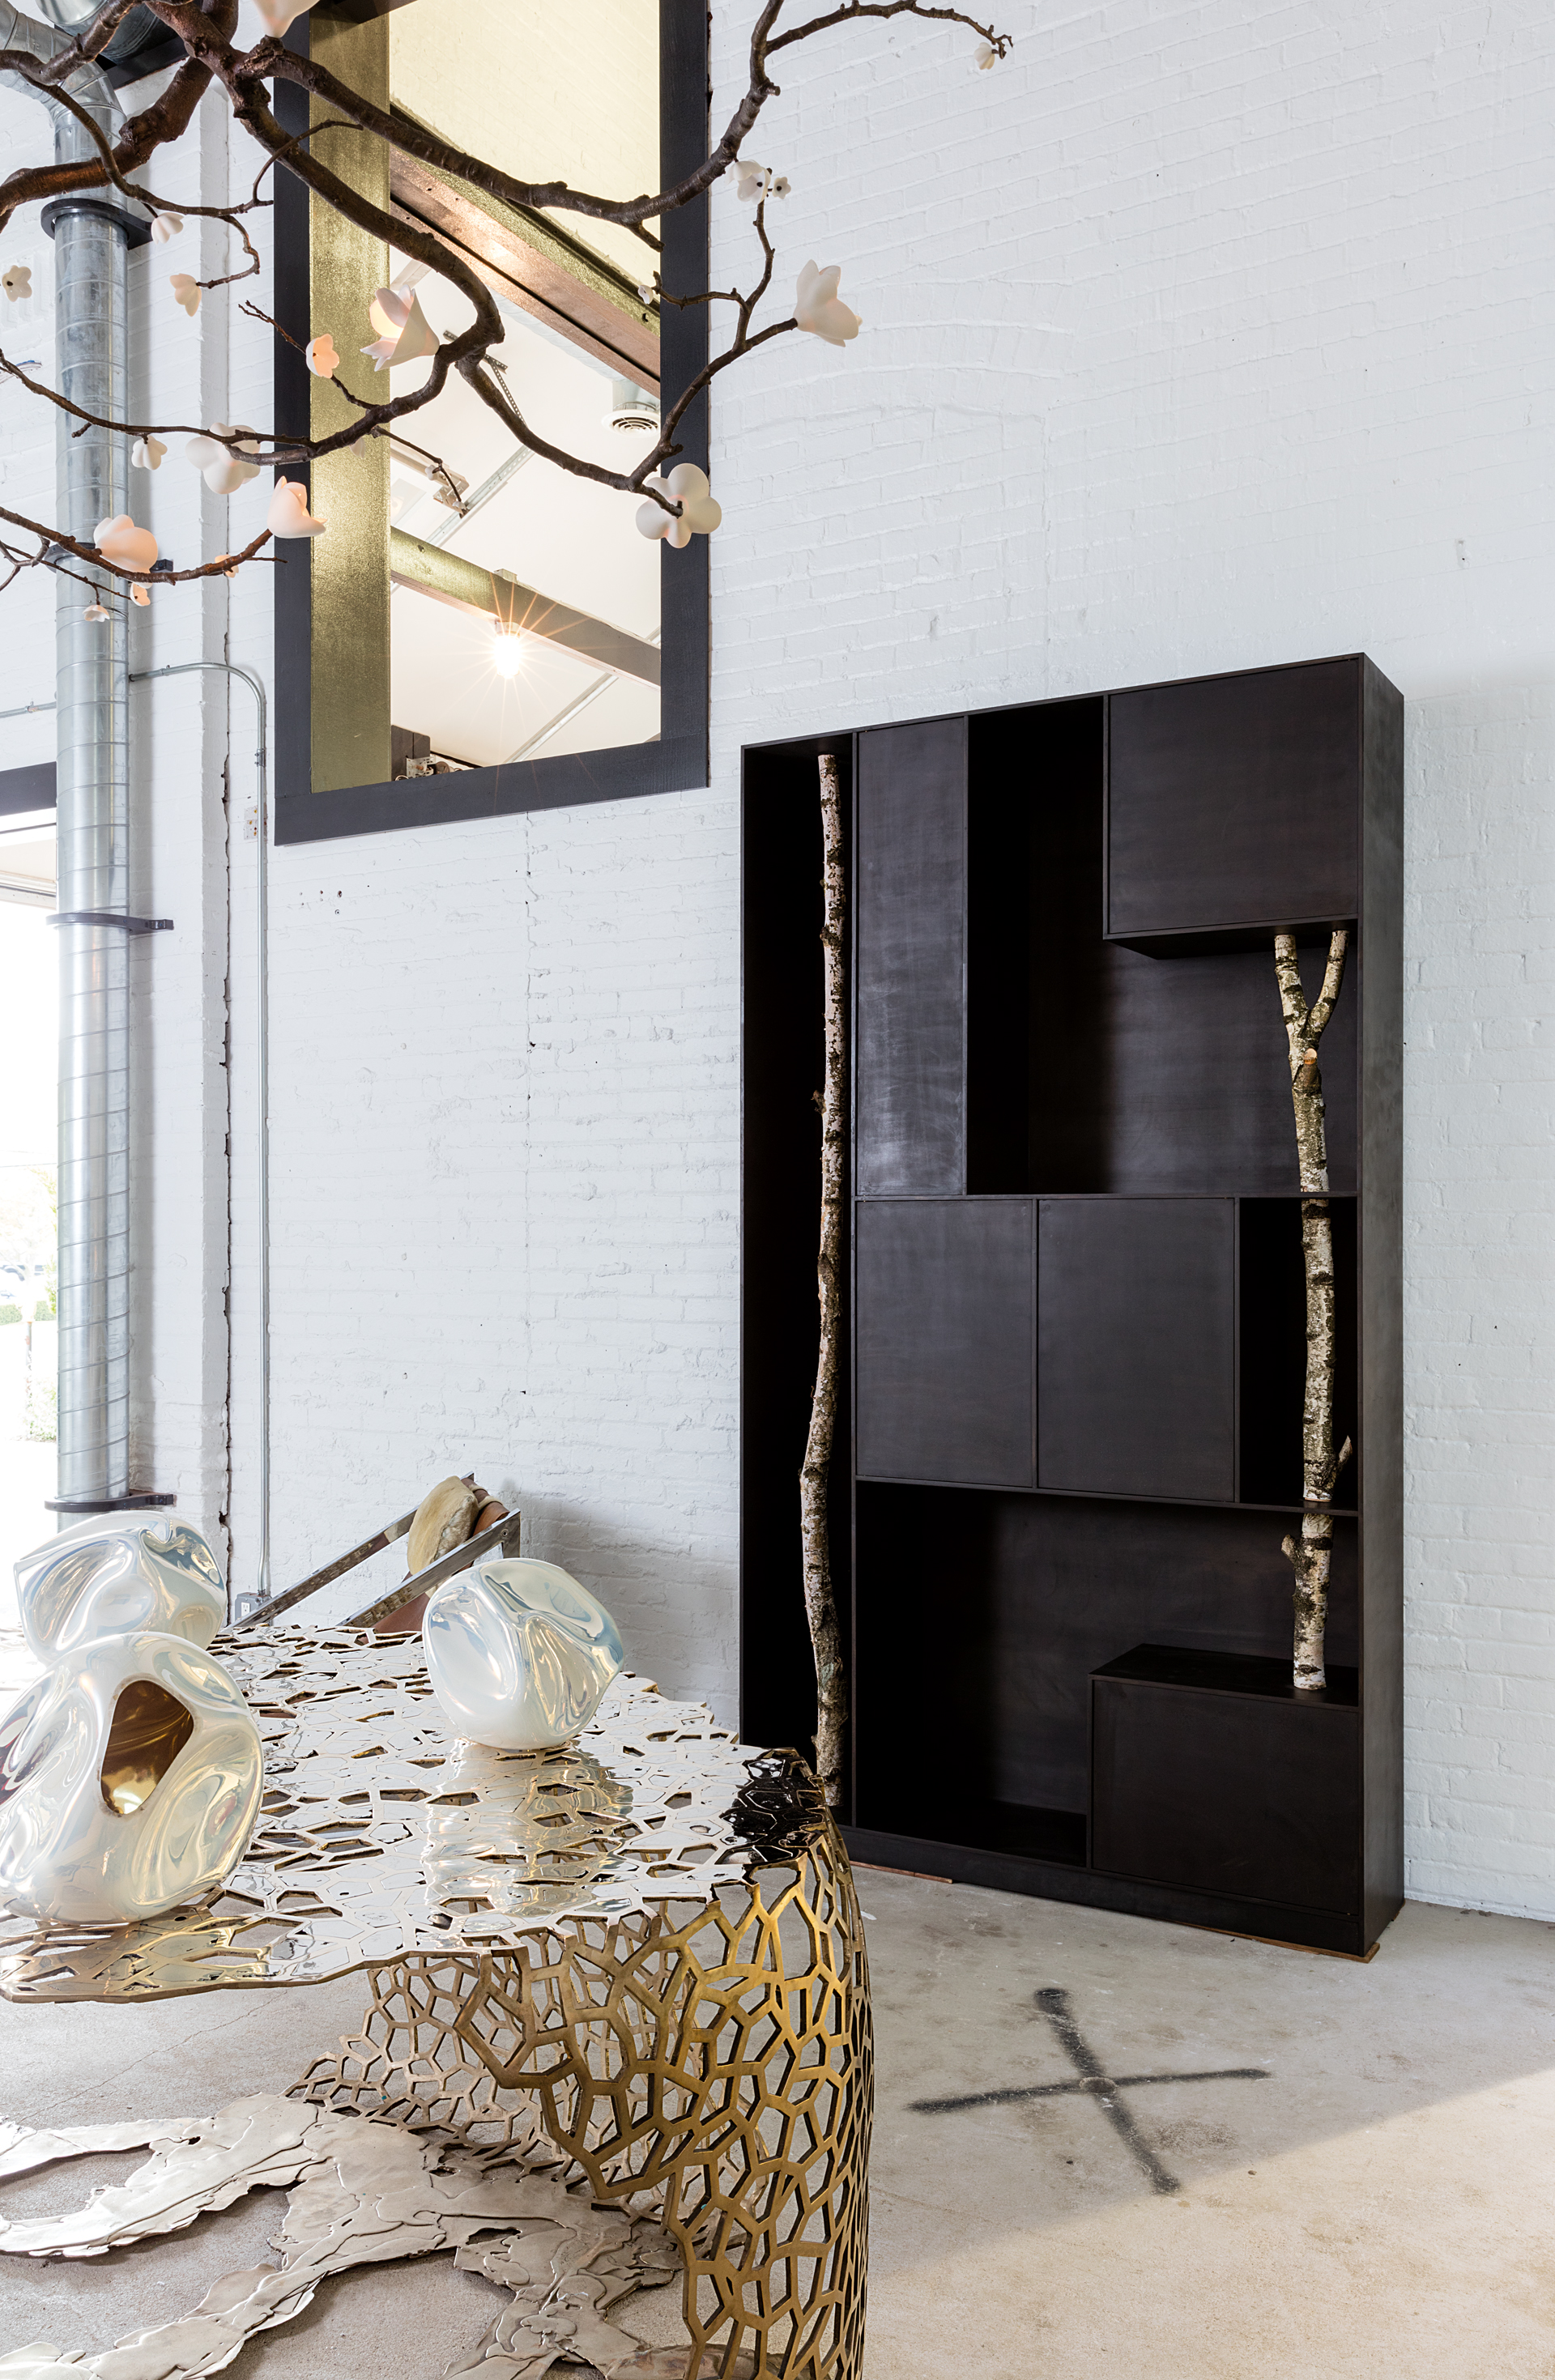 A cabinet by the Italian architect Andrea Branzi is next to a 2015 lace-like bronze table by the American designer David Wiseman.